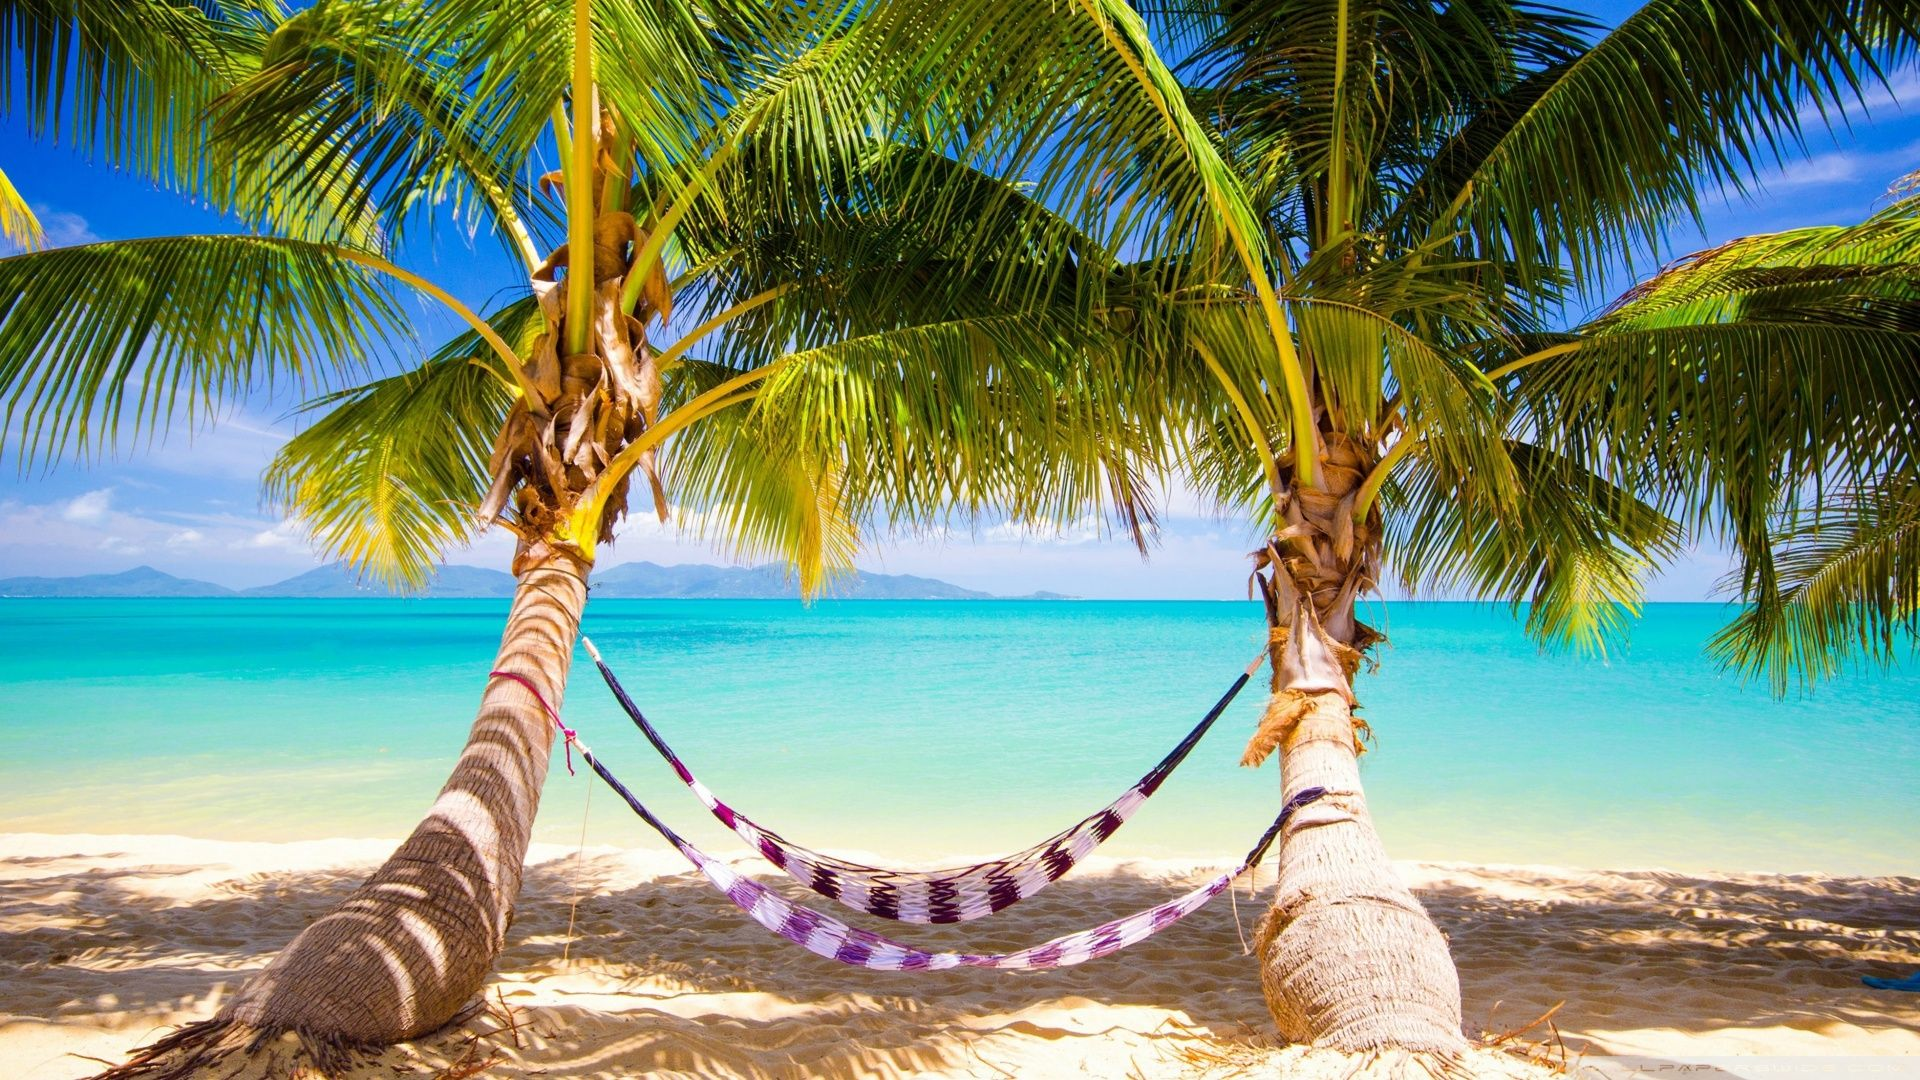 Hd wallpaper xmas - Tropical Beach Hammock Wallpaper Hd Wallpapers Hd